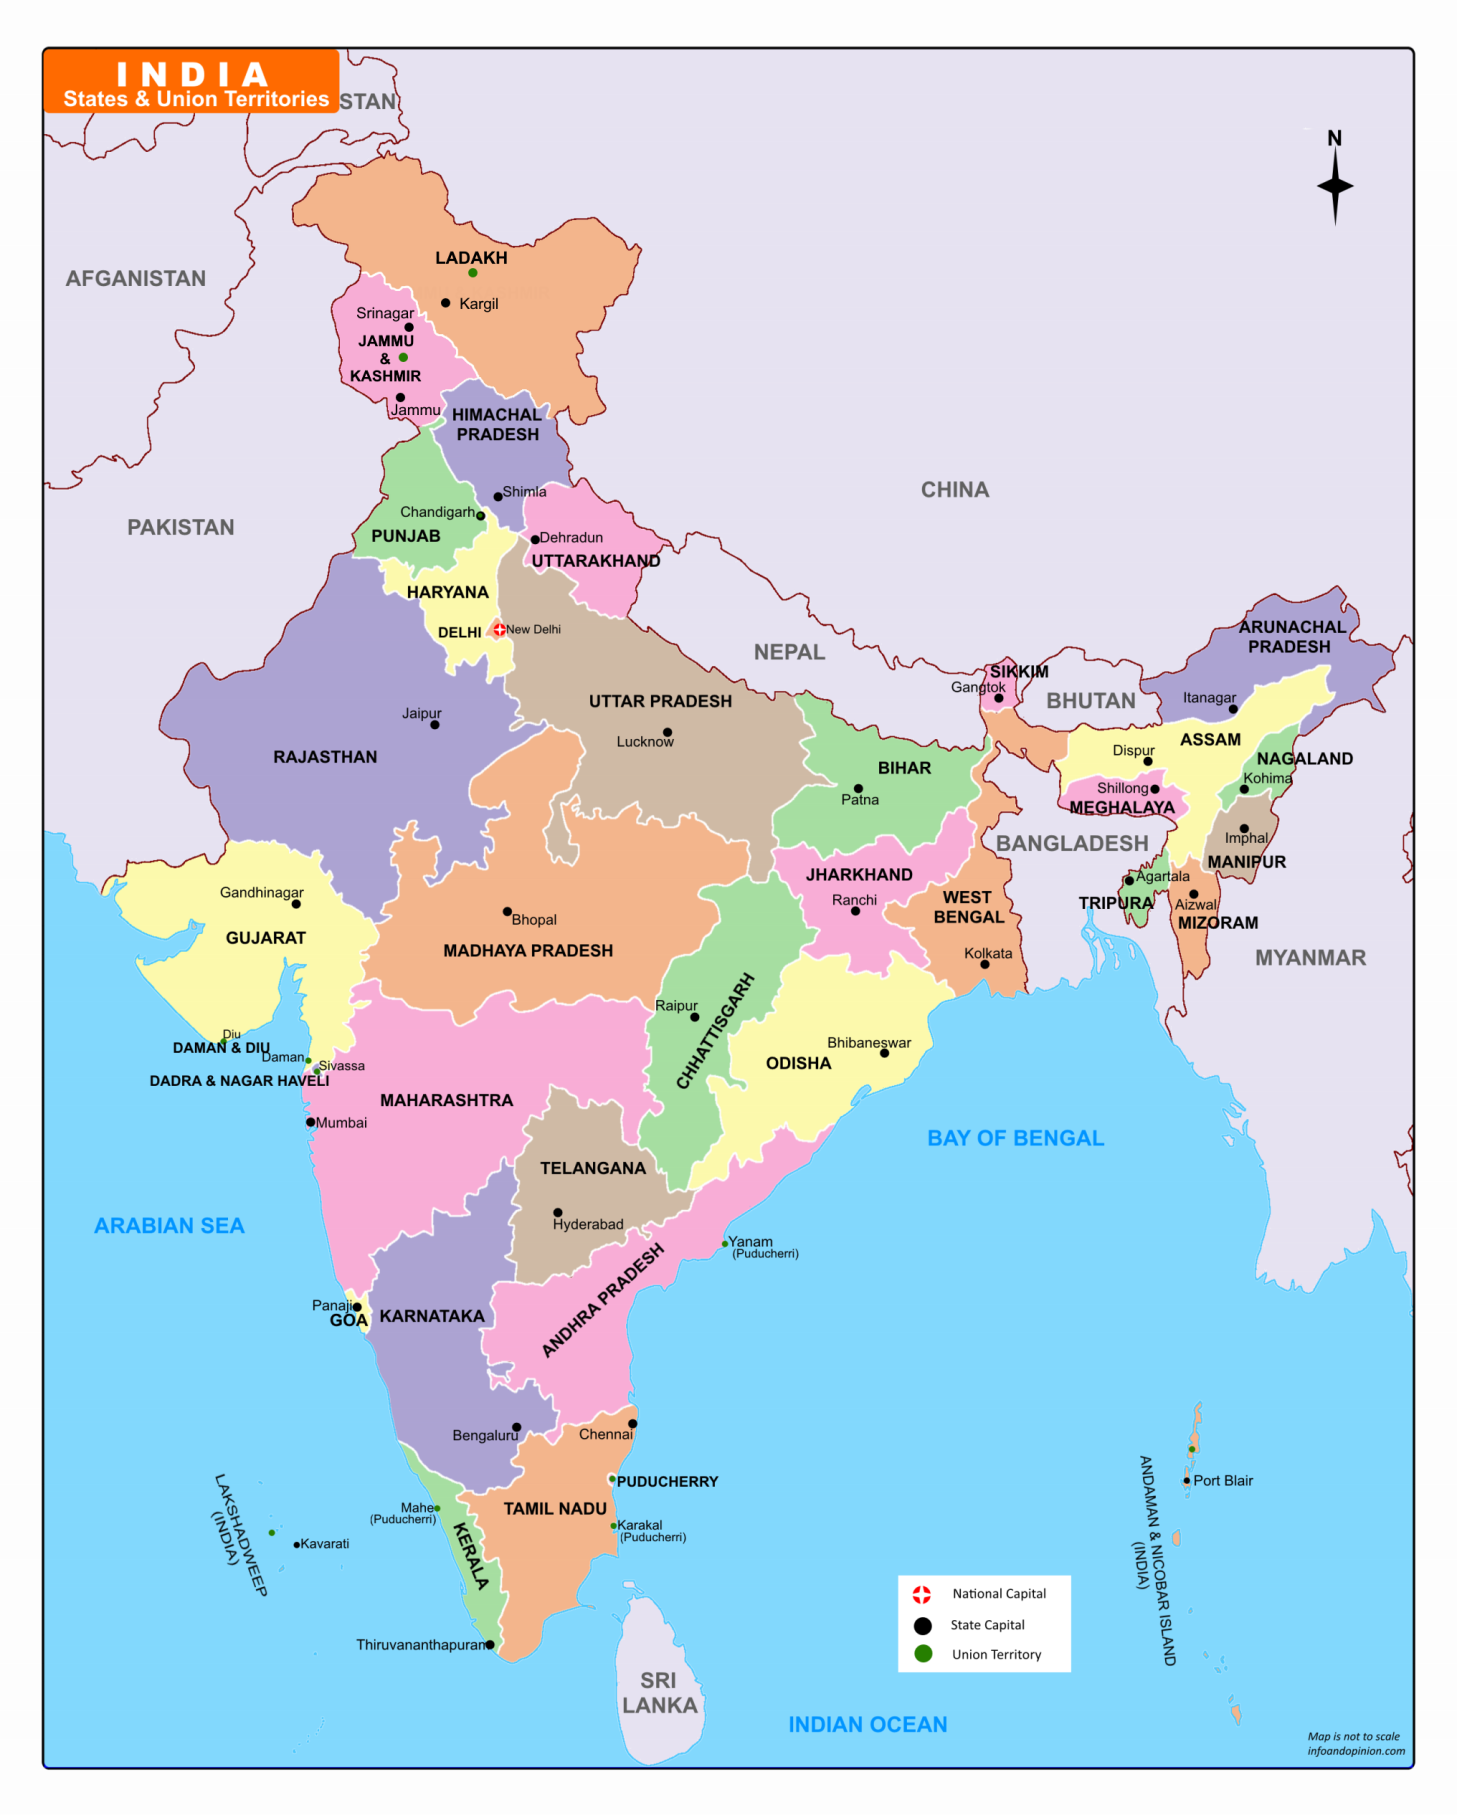 india map pdf download India Map 2019 Download Free Pdf Map With Uts Of J K And Ladkh india map pdf download